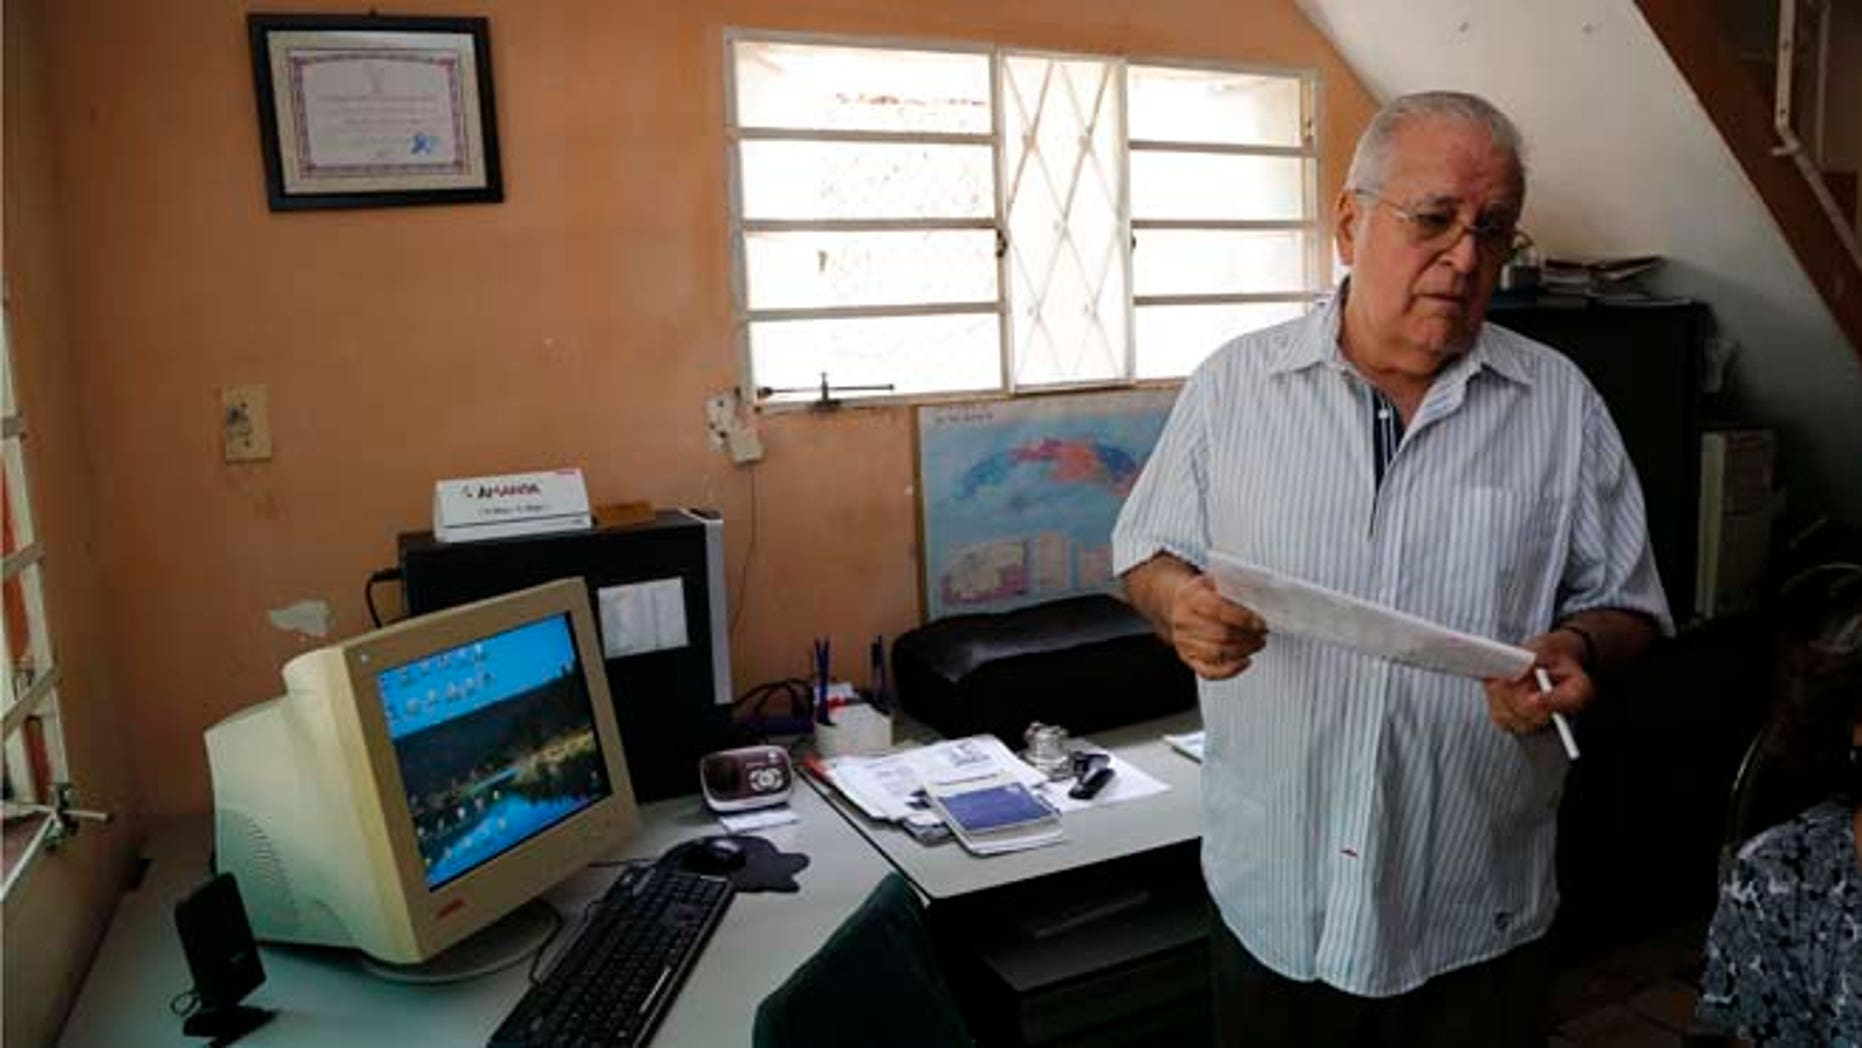 In this July 2, 2015 photo, dissident Elizardo Sanchez, president of the Cuban Commission for Human Rights and National Reconciliation, stands in his home in Havana, Cuba. Many of the dissidents are feeling increasingly sidelined and abandoned as both countries celebrate milestones like Monday's opening of embassies in Havana and Washington. (AP Photo/Desmond Boylan)